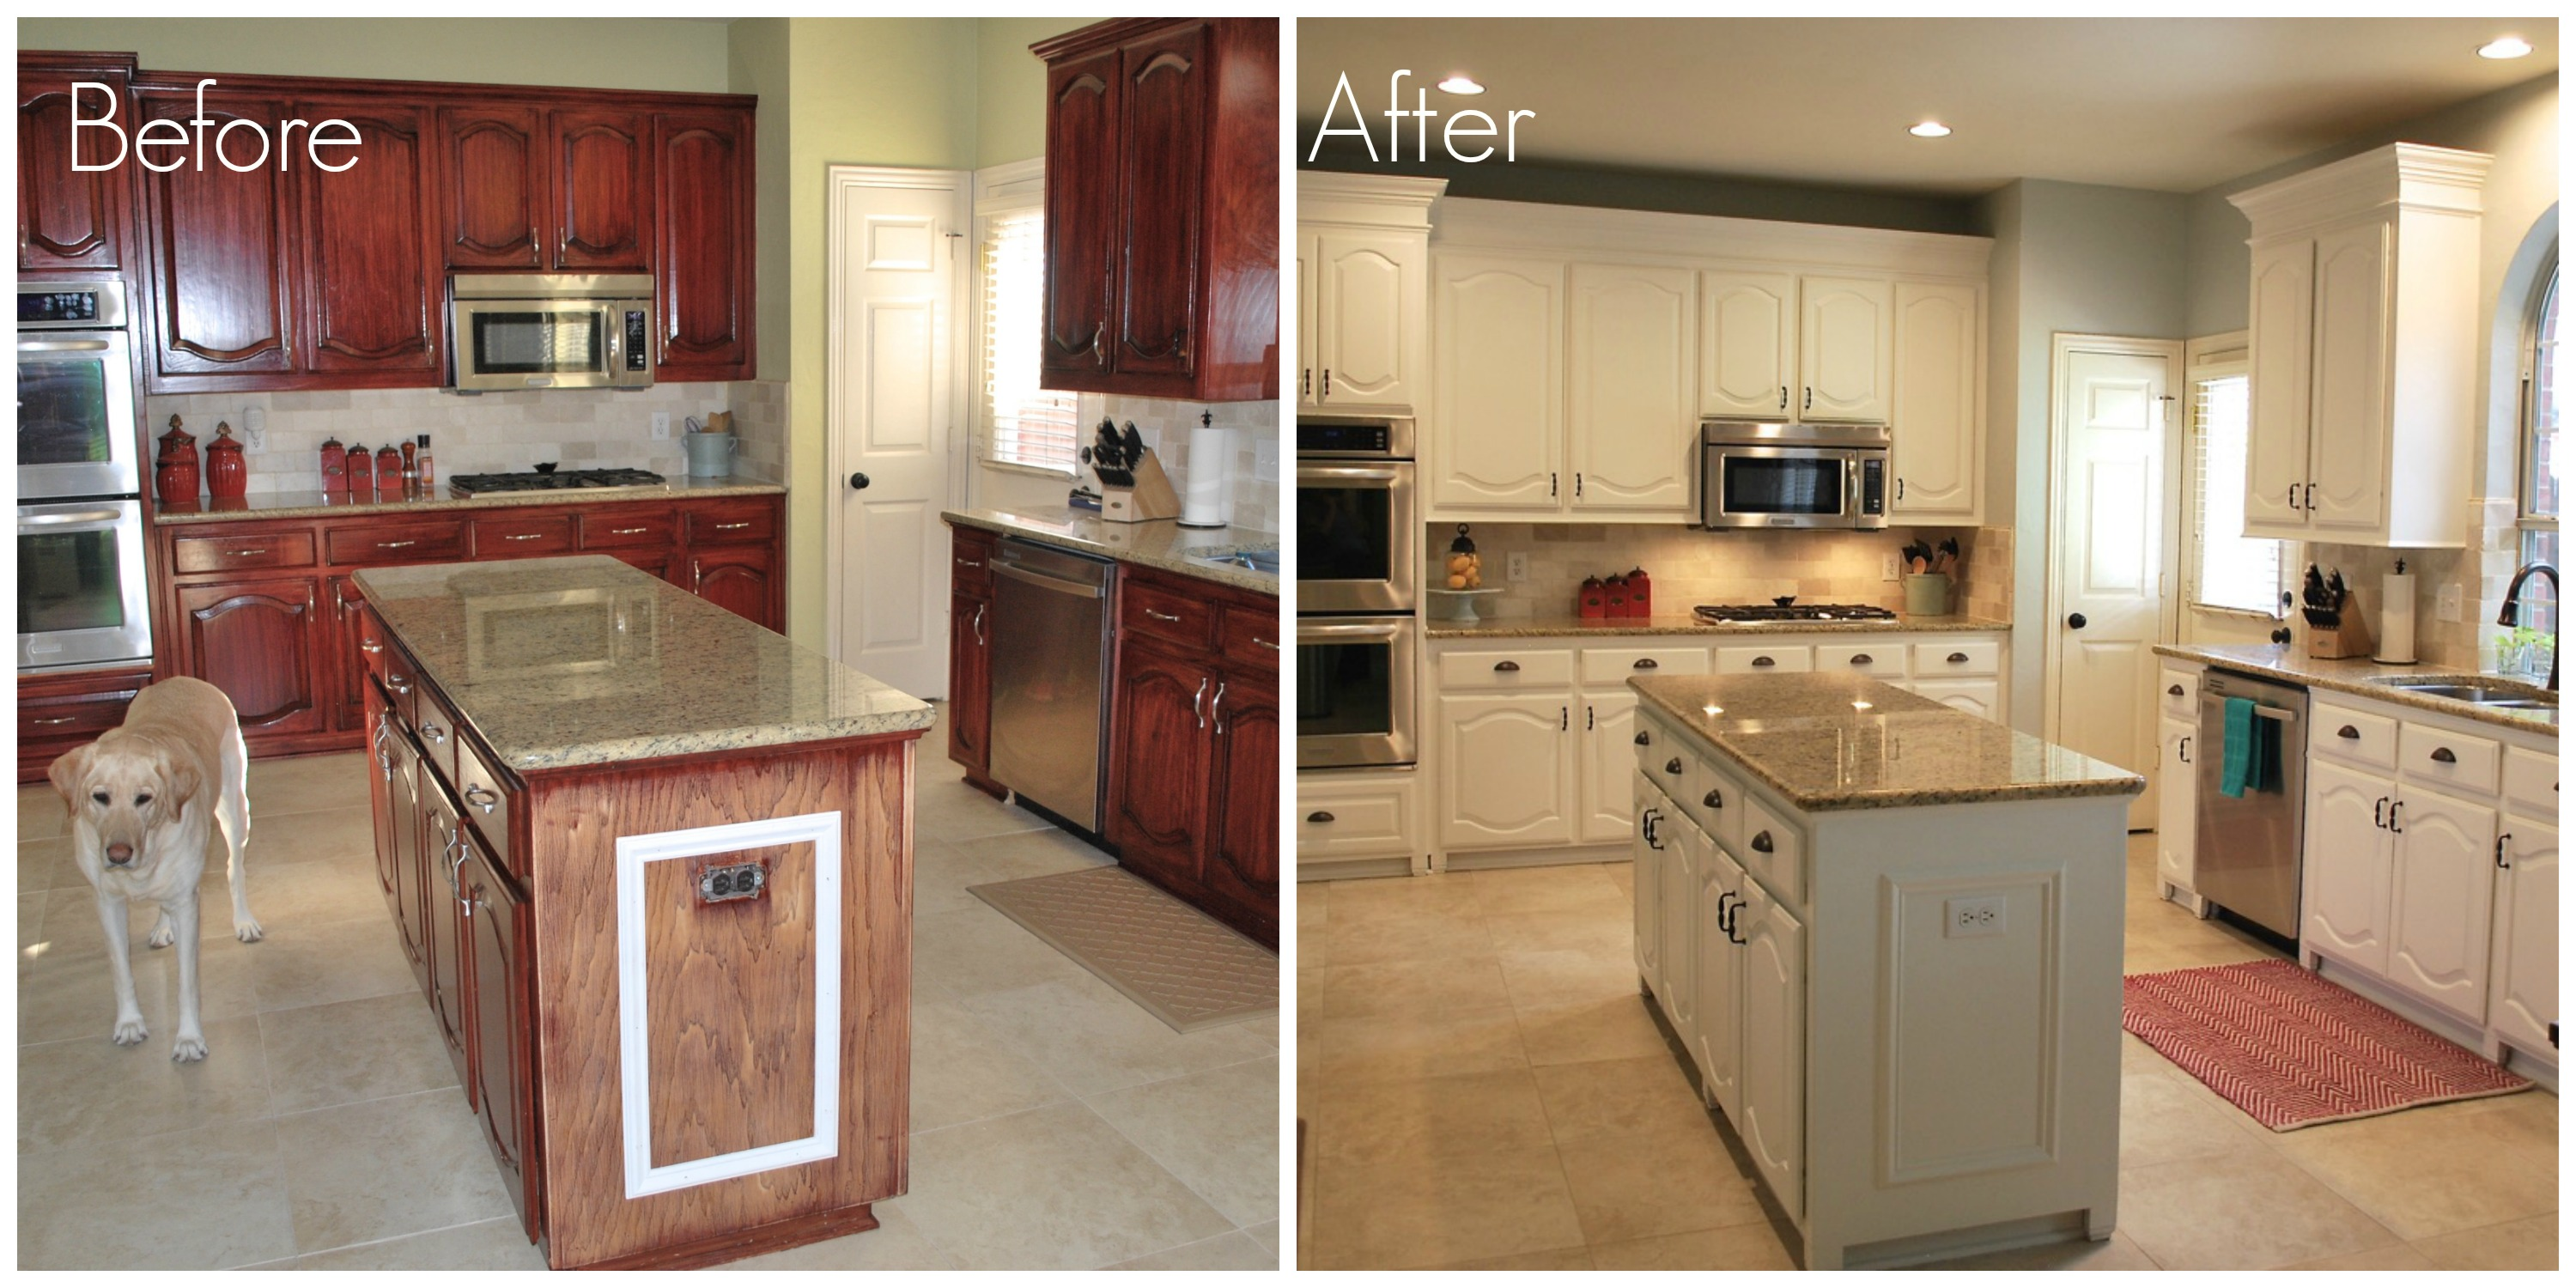 Our kitchen transformation from dark to white beautiful for Kitchen cabinets before and after